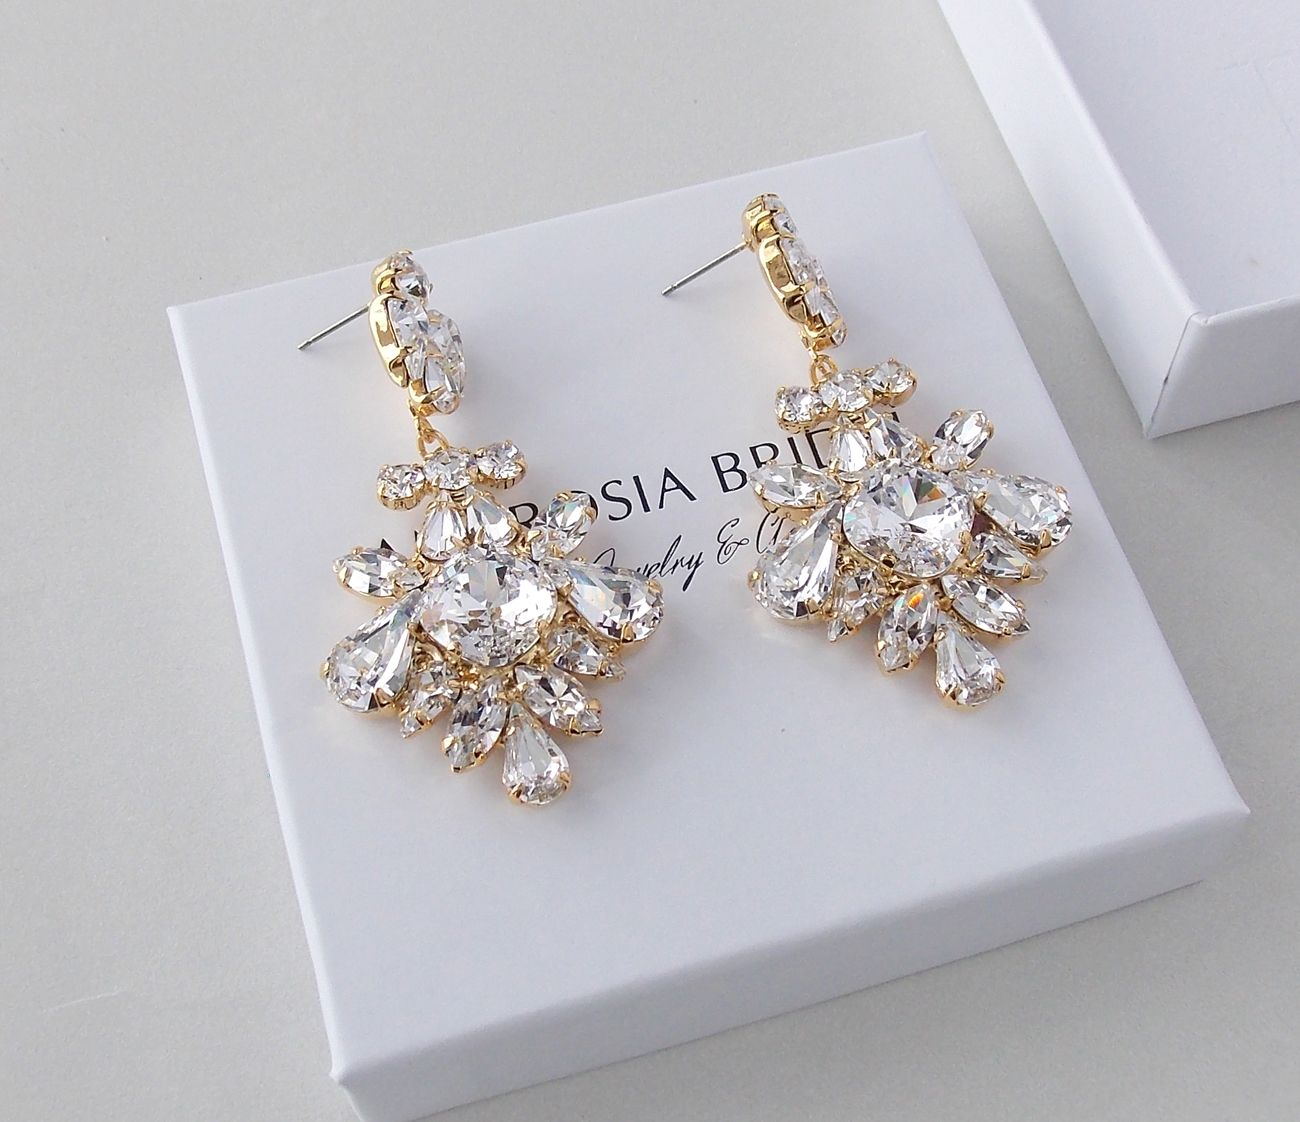 Glimmering, Shimmering Gold  Chandelier Earrings With Sparkling Swarovski  Crystals And Gilded Settings Marvelous